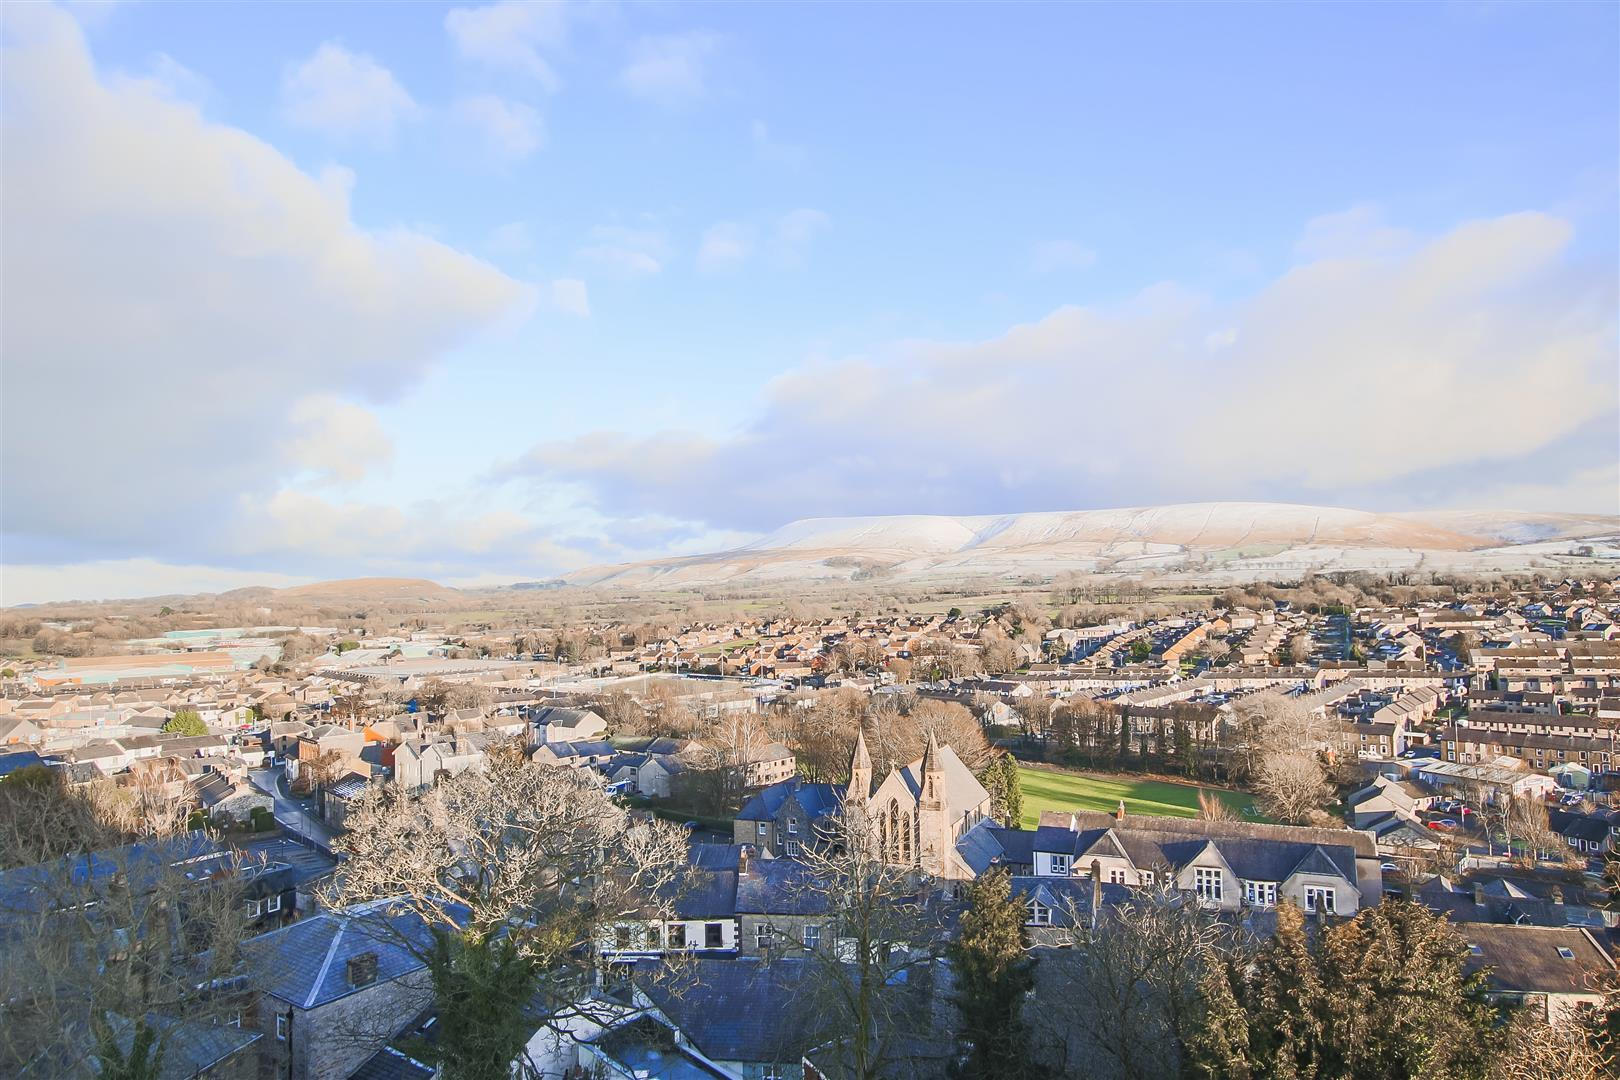 3 Bedroom Semi-detached House For Sale - Pendle Hill Views